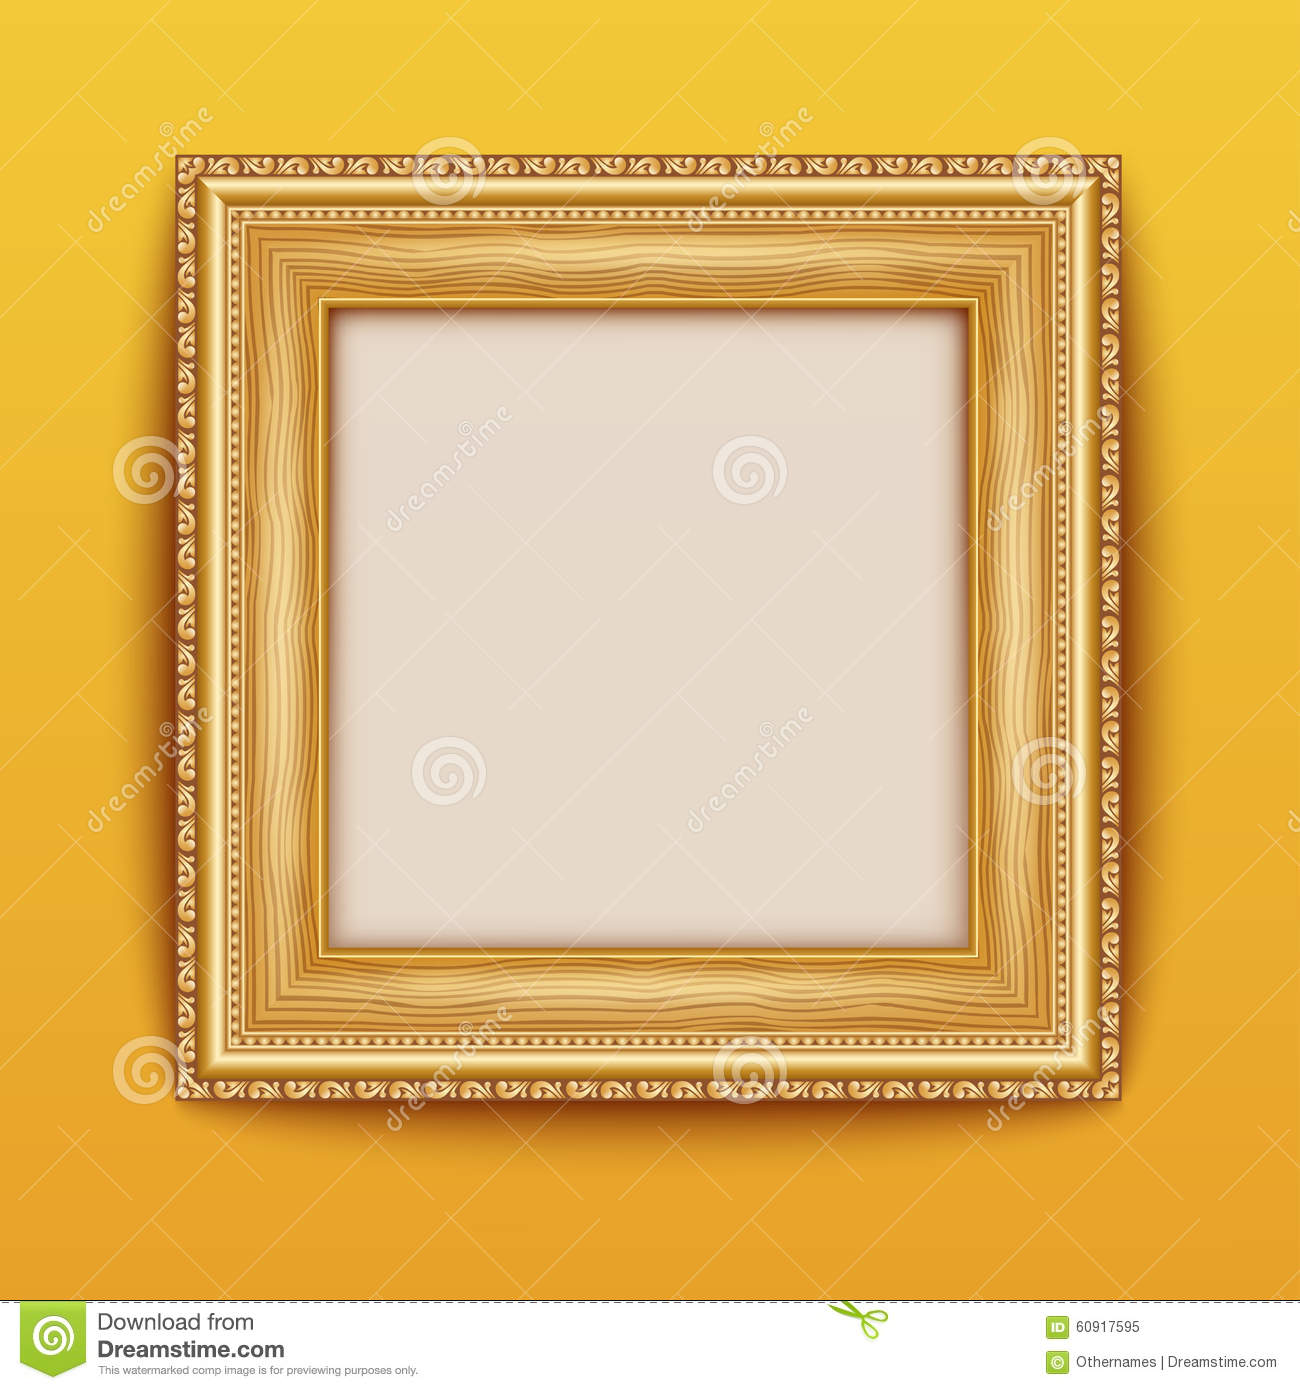 Empty Gold Frame Hanging On The Wall. Stock Vector - Illustration of ...